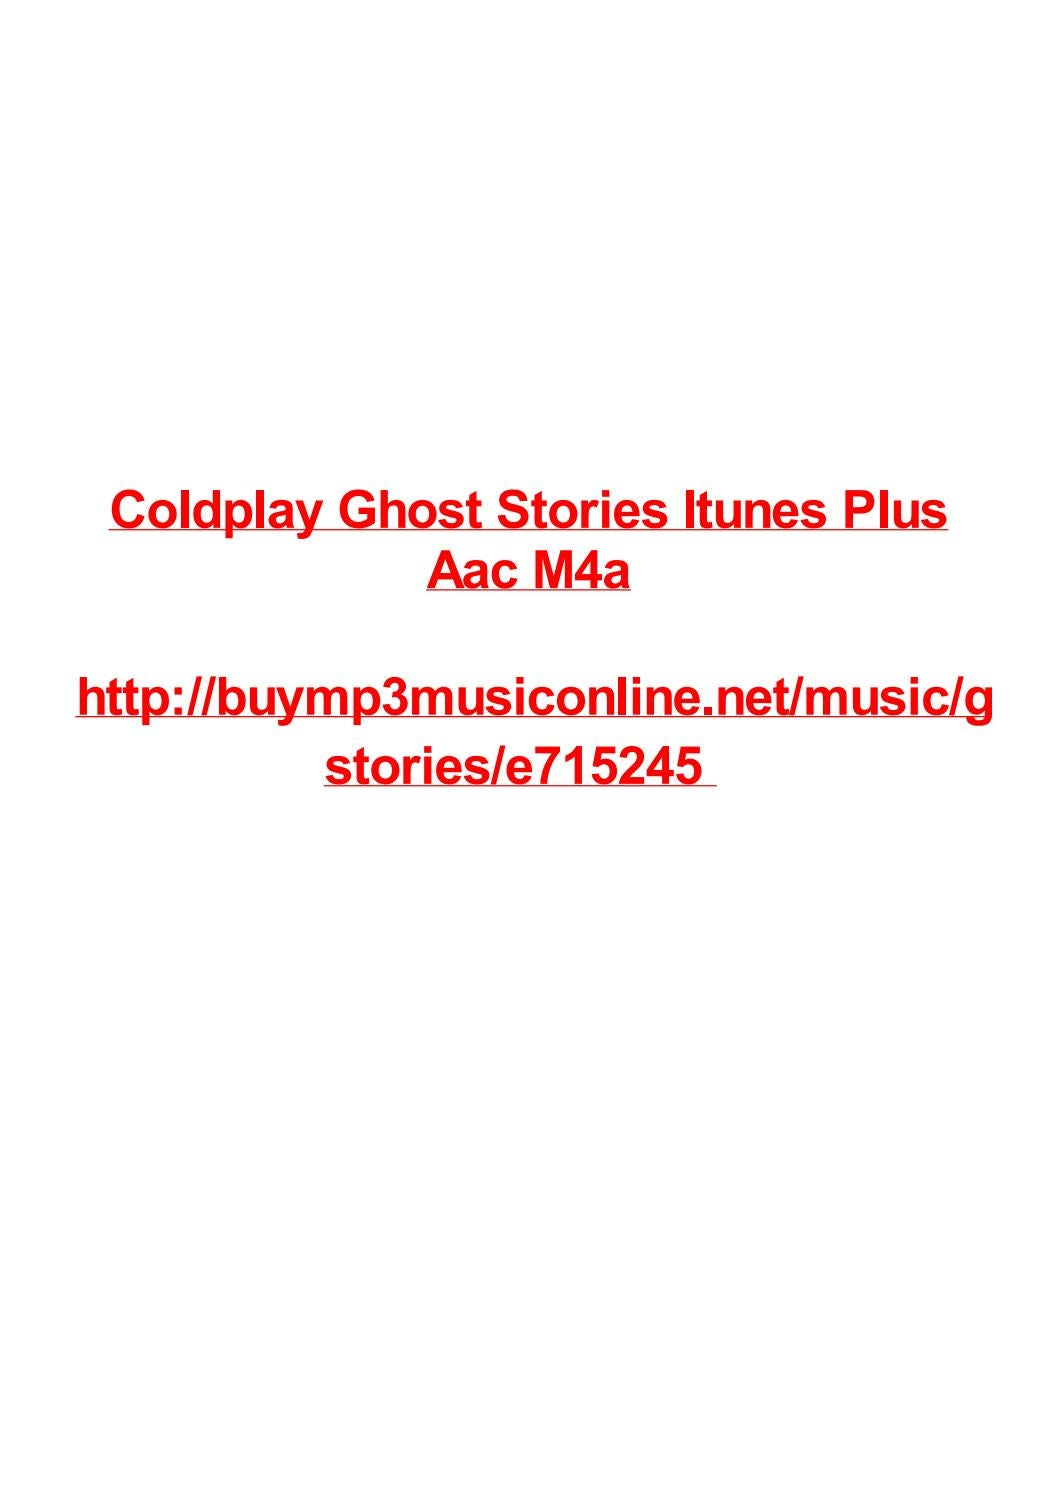 Coldplay ghost stories itunes plus aac m4a by Max Polansky